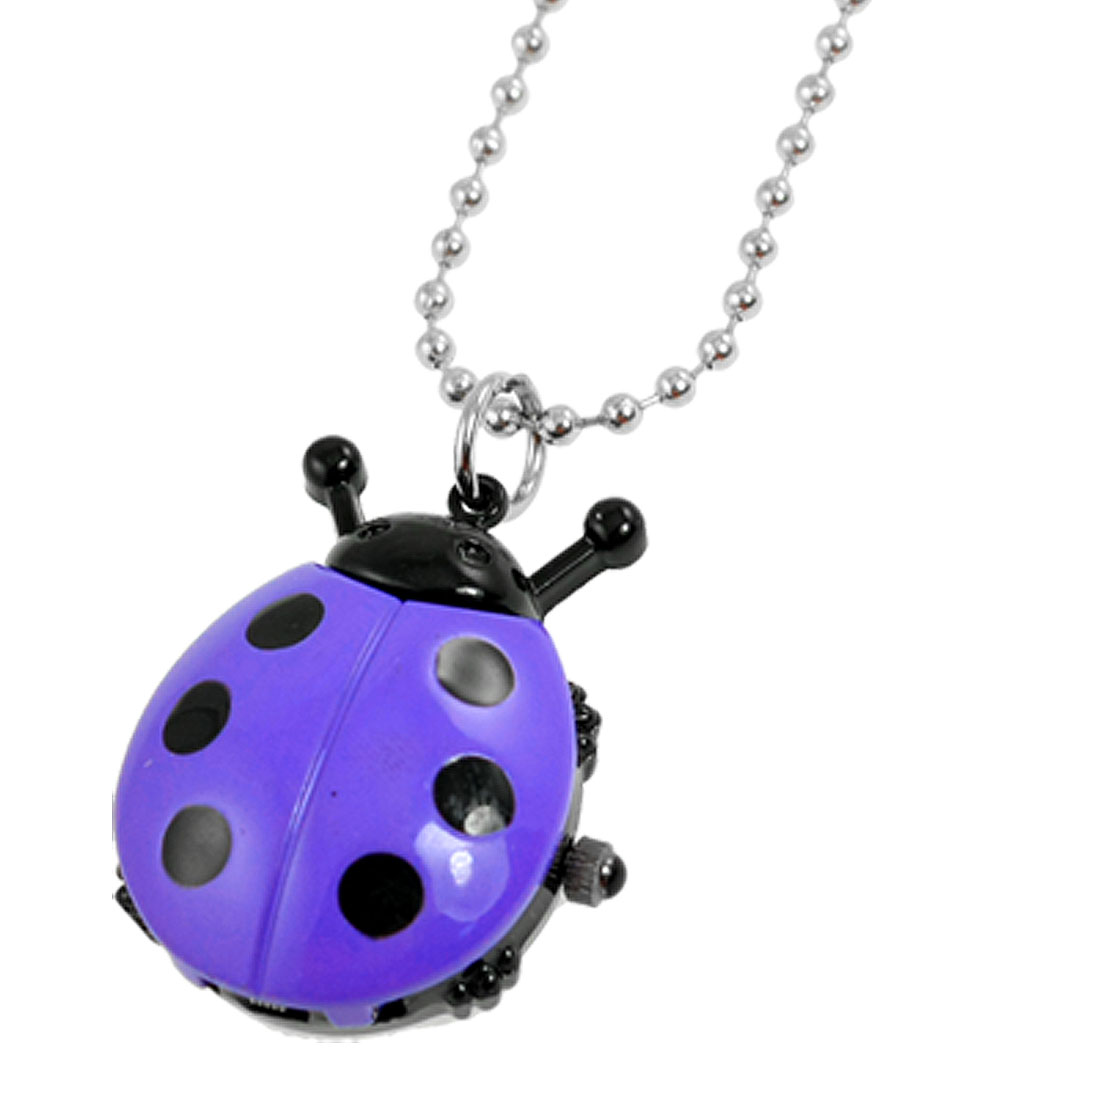 Lady Black Purple Ladybug Pendant Silver Tone Beaded Chain Necklace Watch